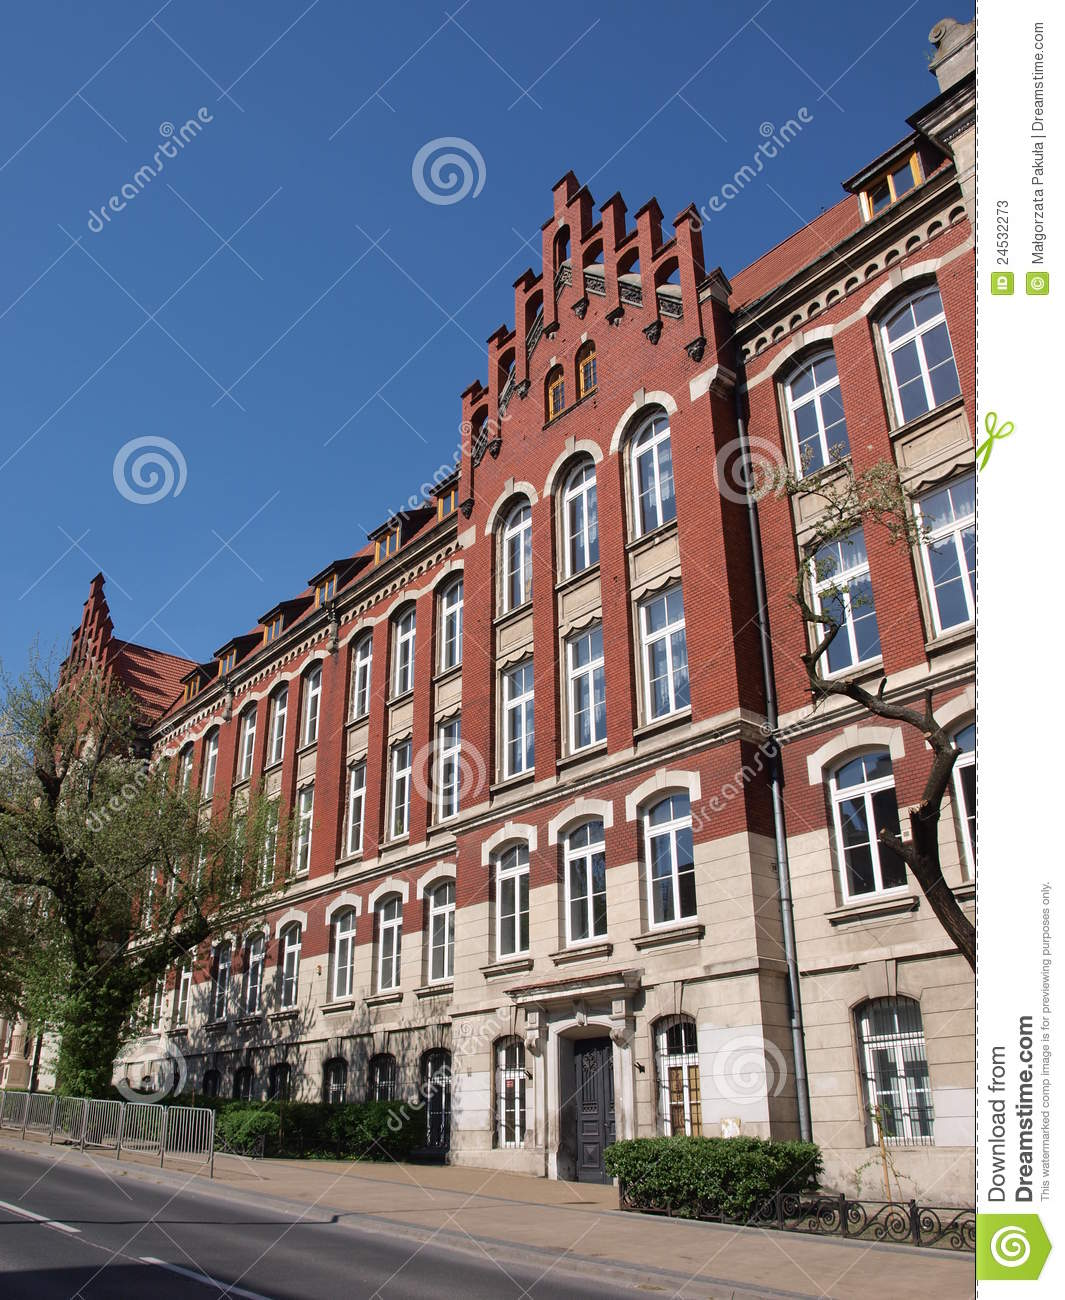 School Of Economics Lublin Poland Stock Photos Image 24532273